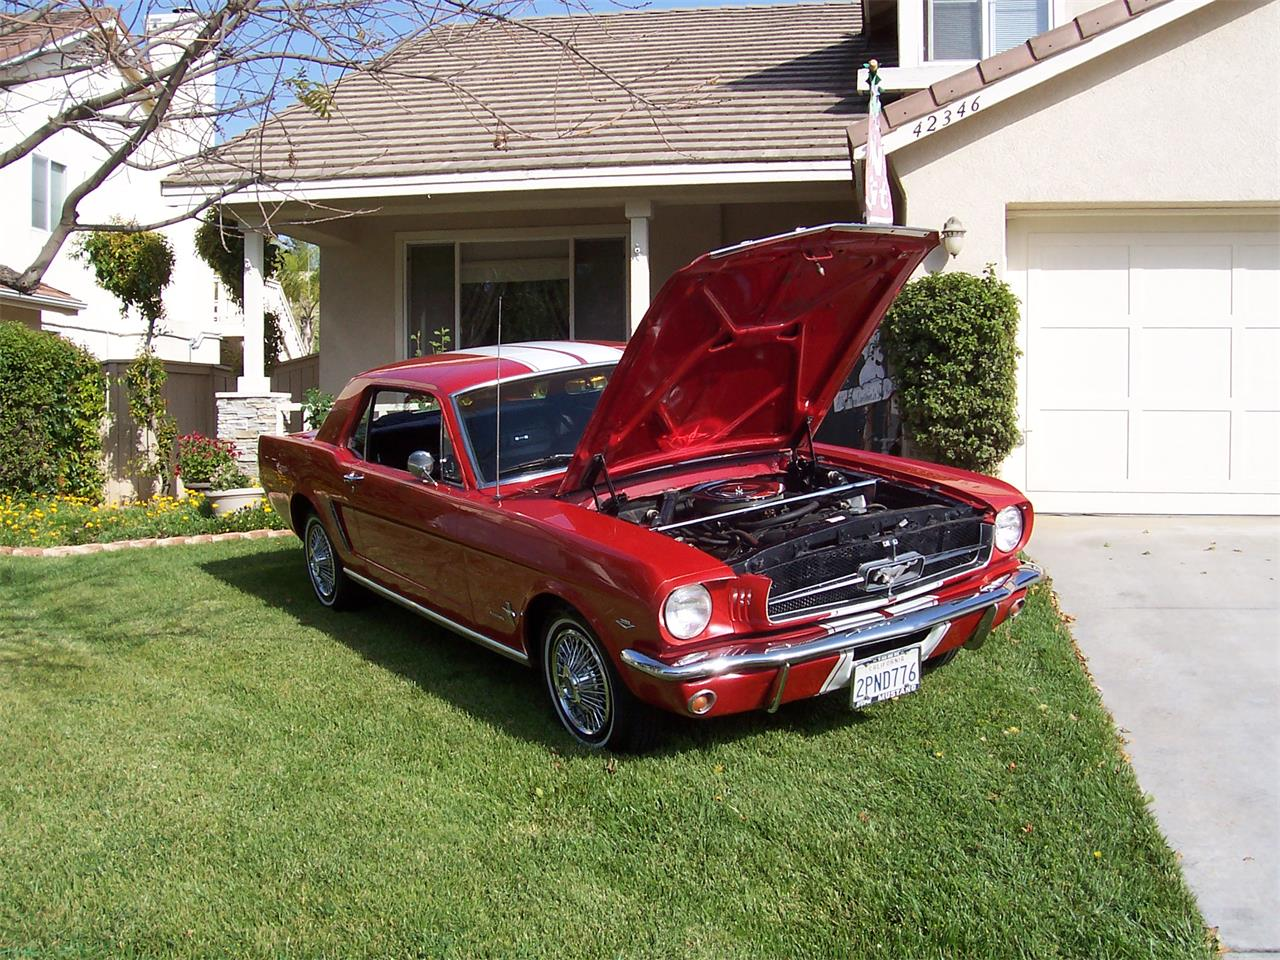 Large Picture of 1965 Mustang located in TEMECULA California - CCRD